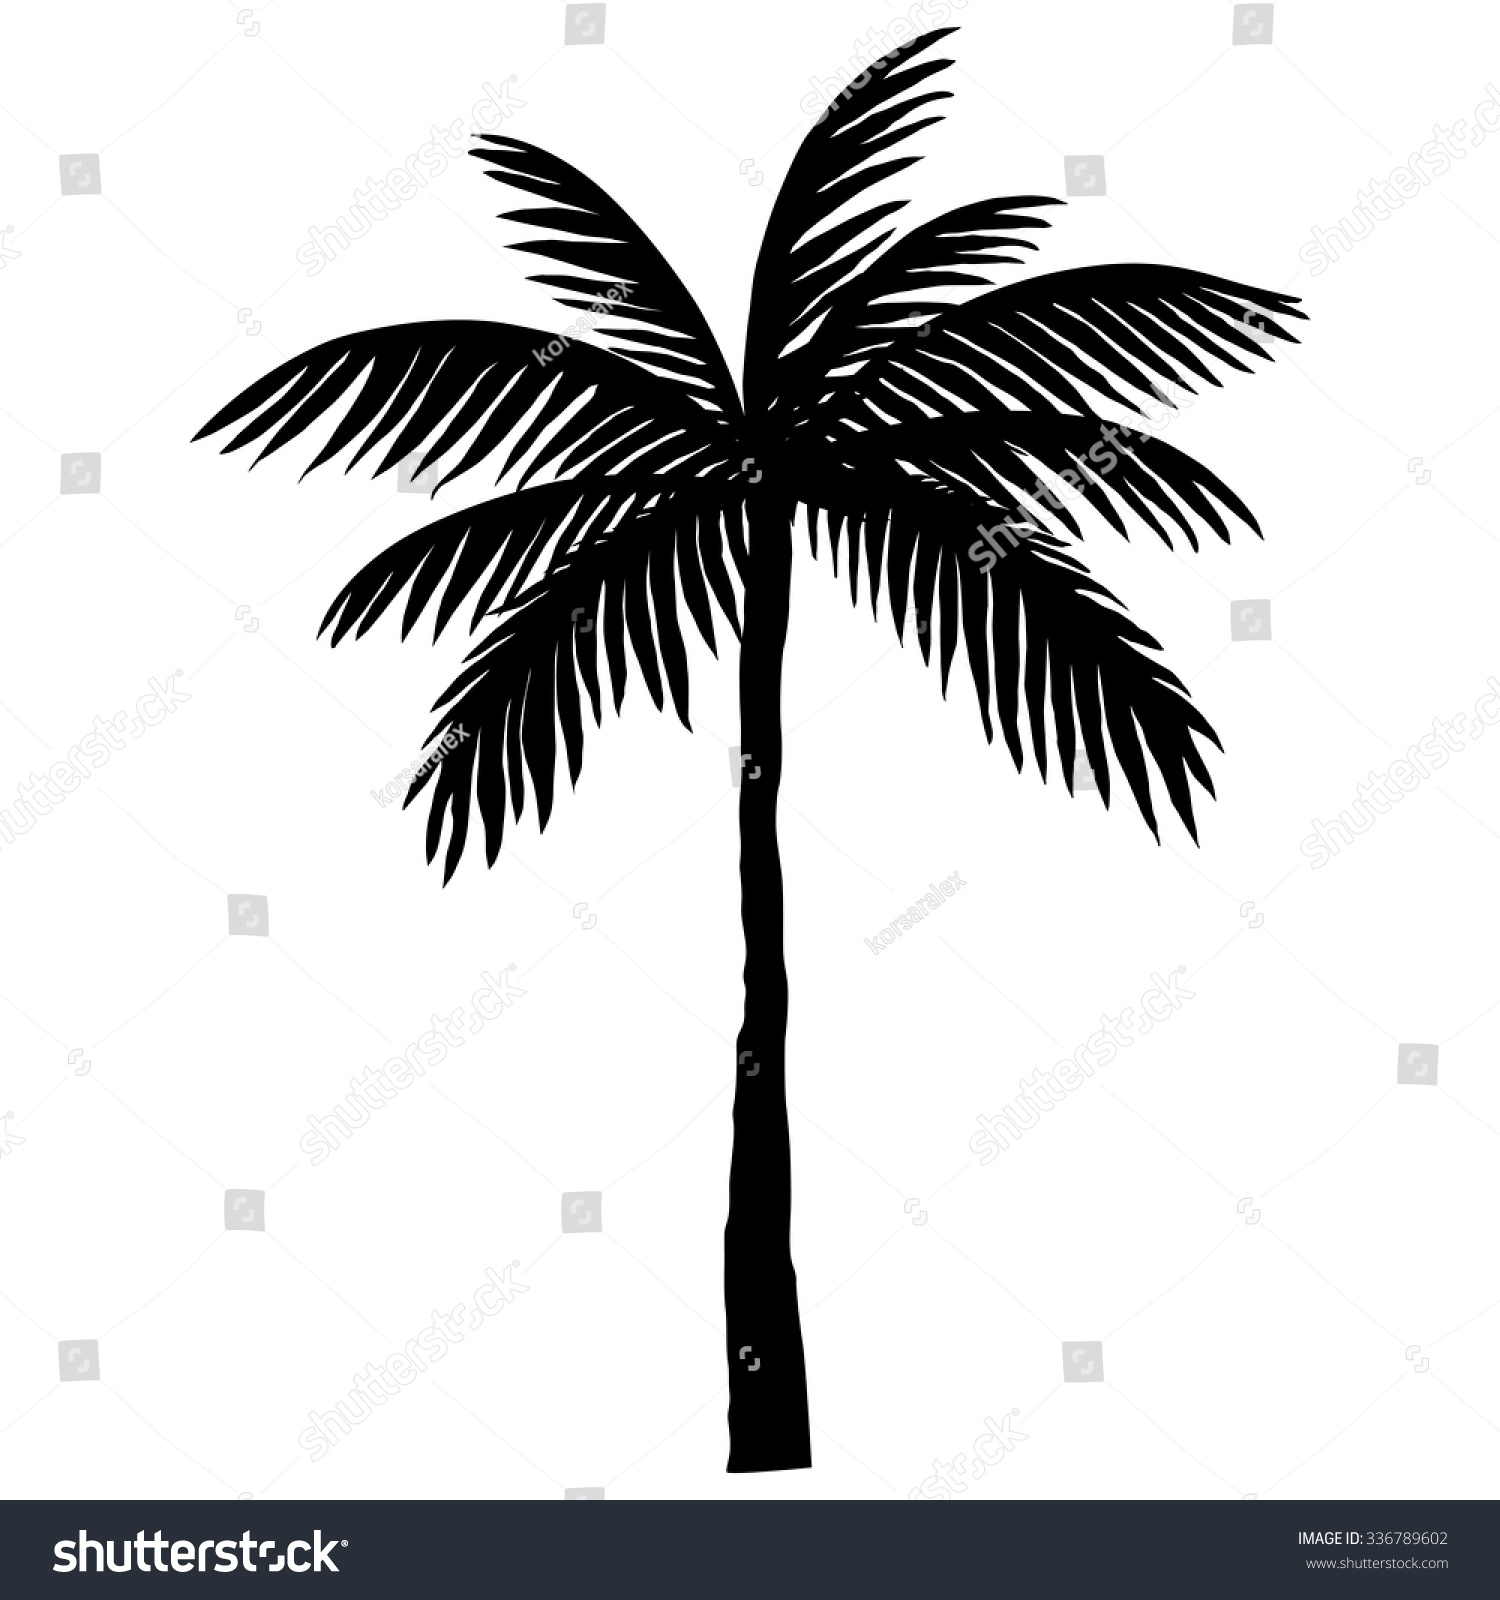 silhouette palm trees stock vector 336789602 shutterstock